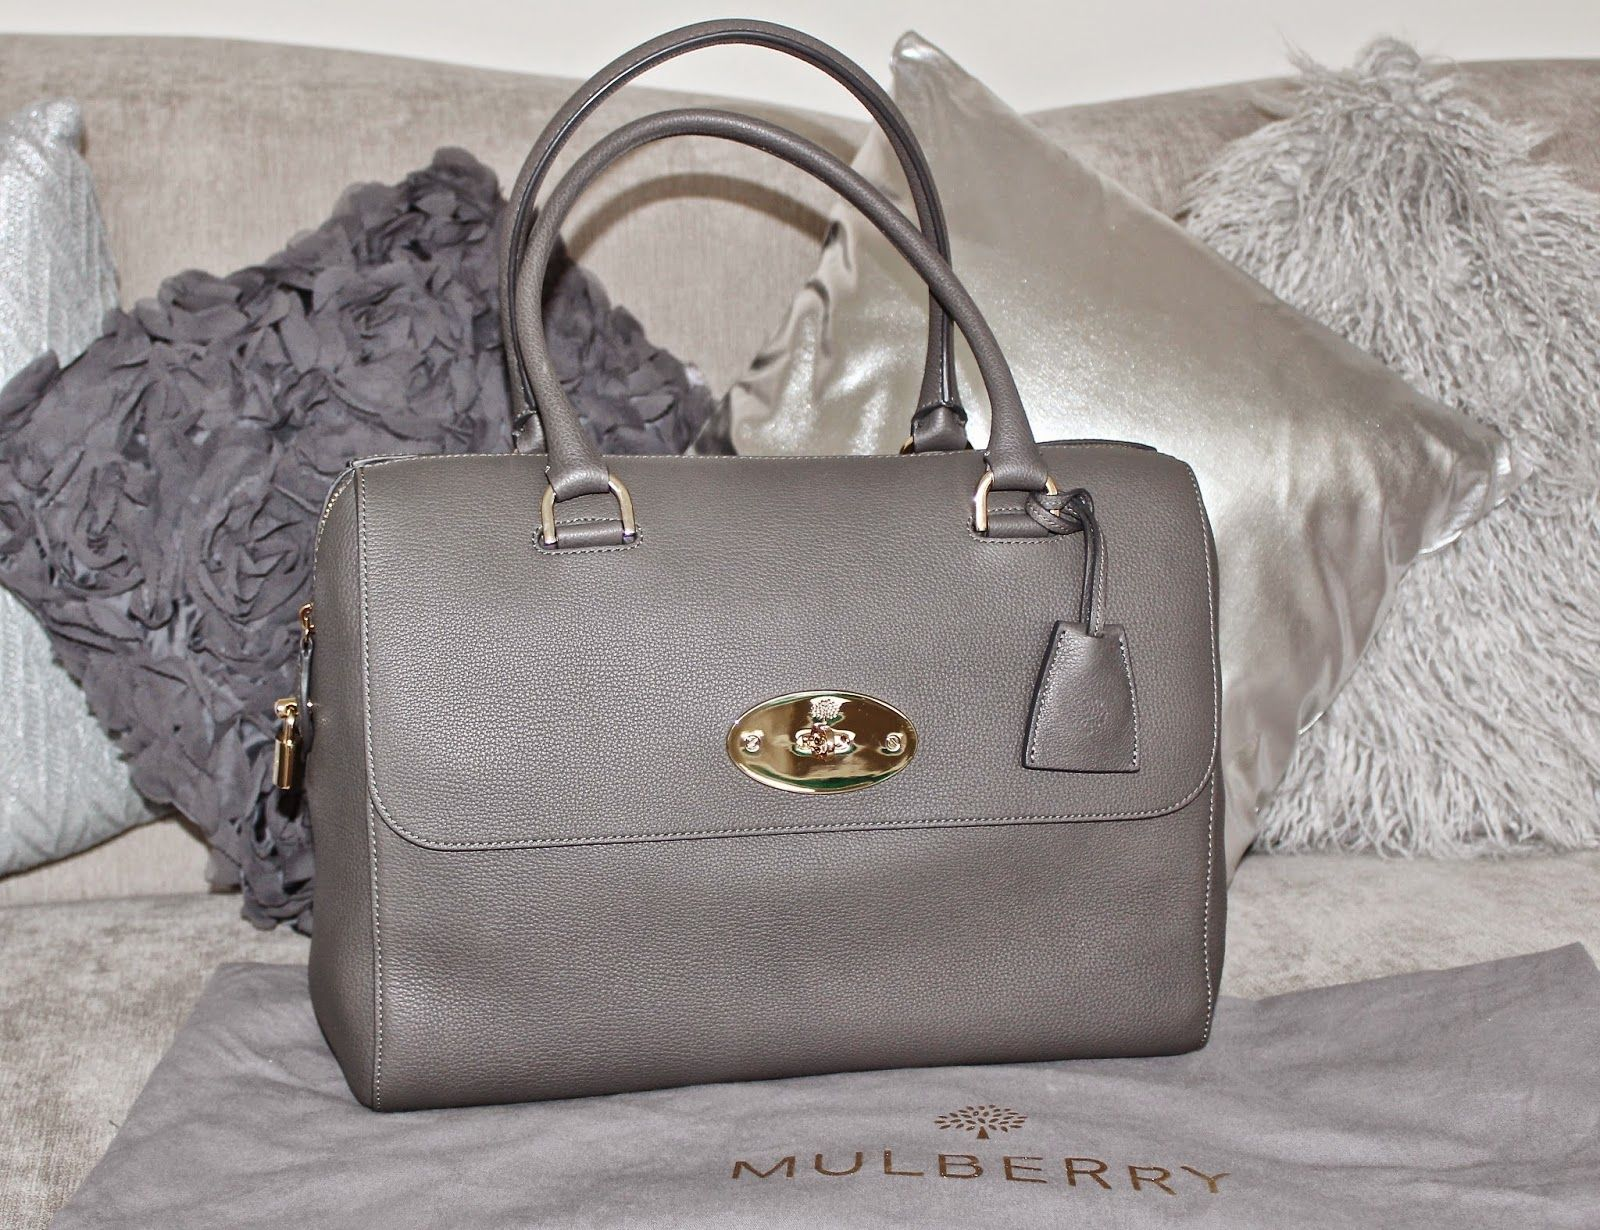 2a15105cf3 flutter and sparkle  Mole Grey Del Rey bag from the Mulberry Outlet at  Bicester Village - plus current bag stock list!